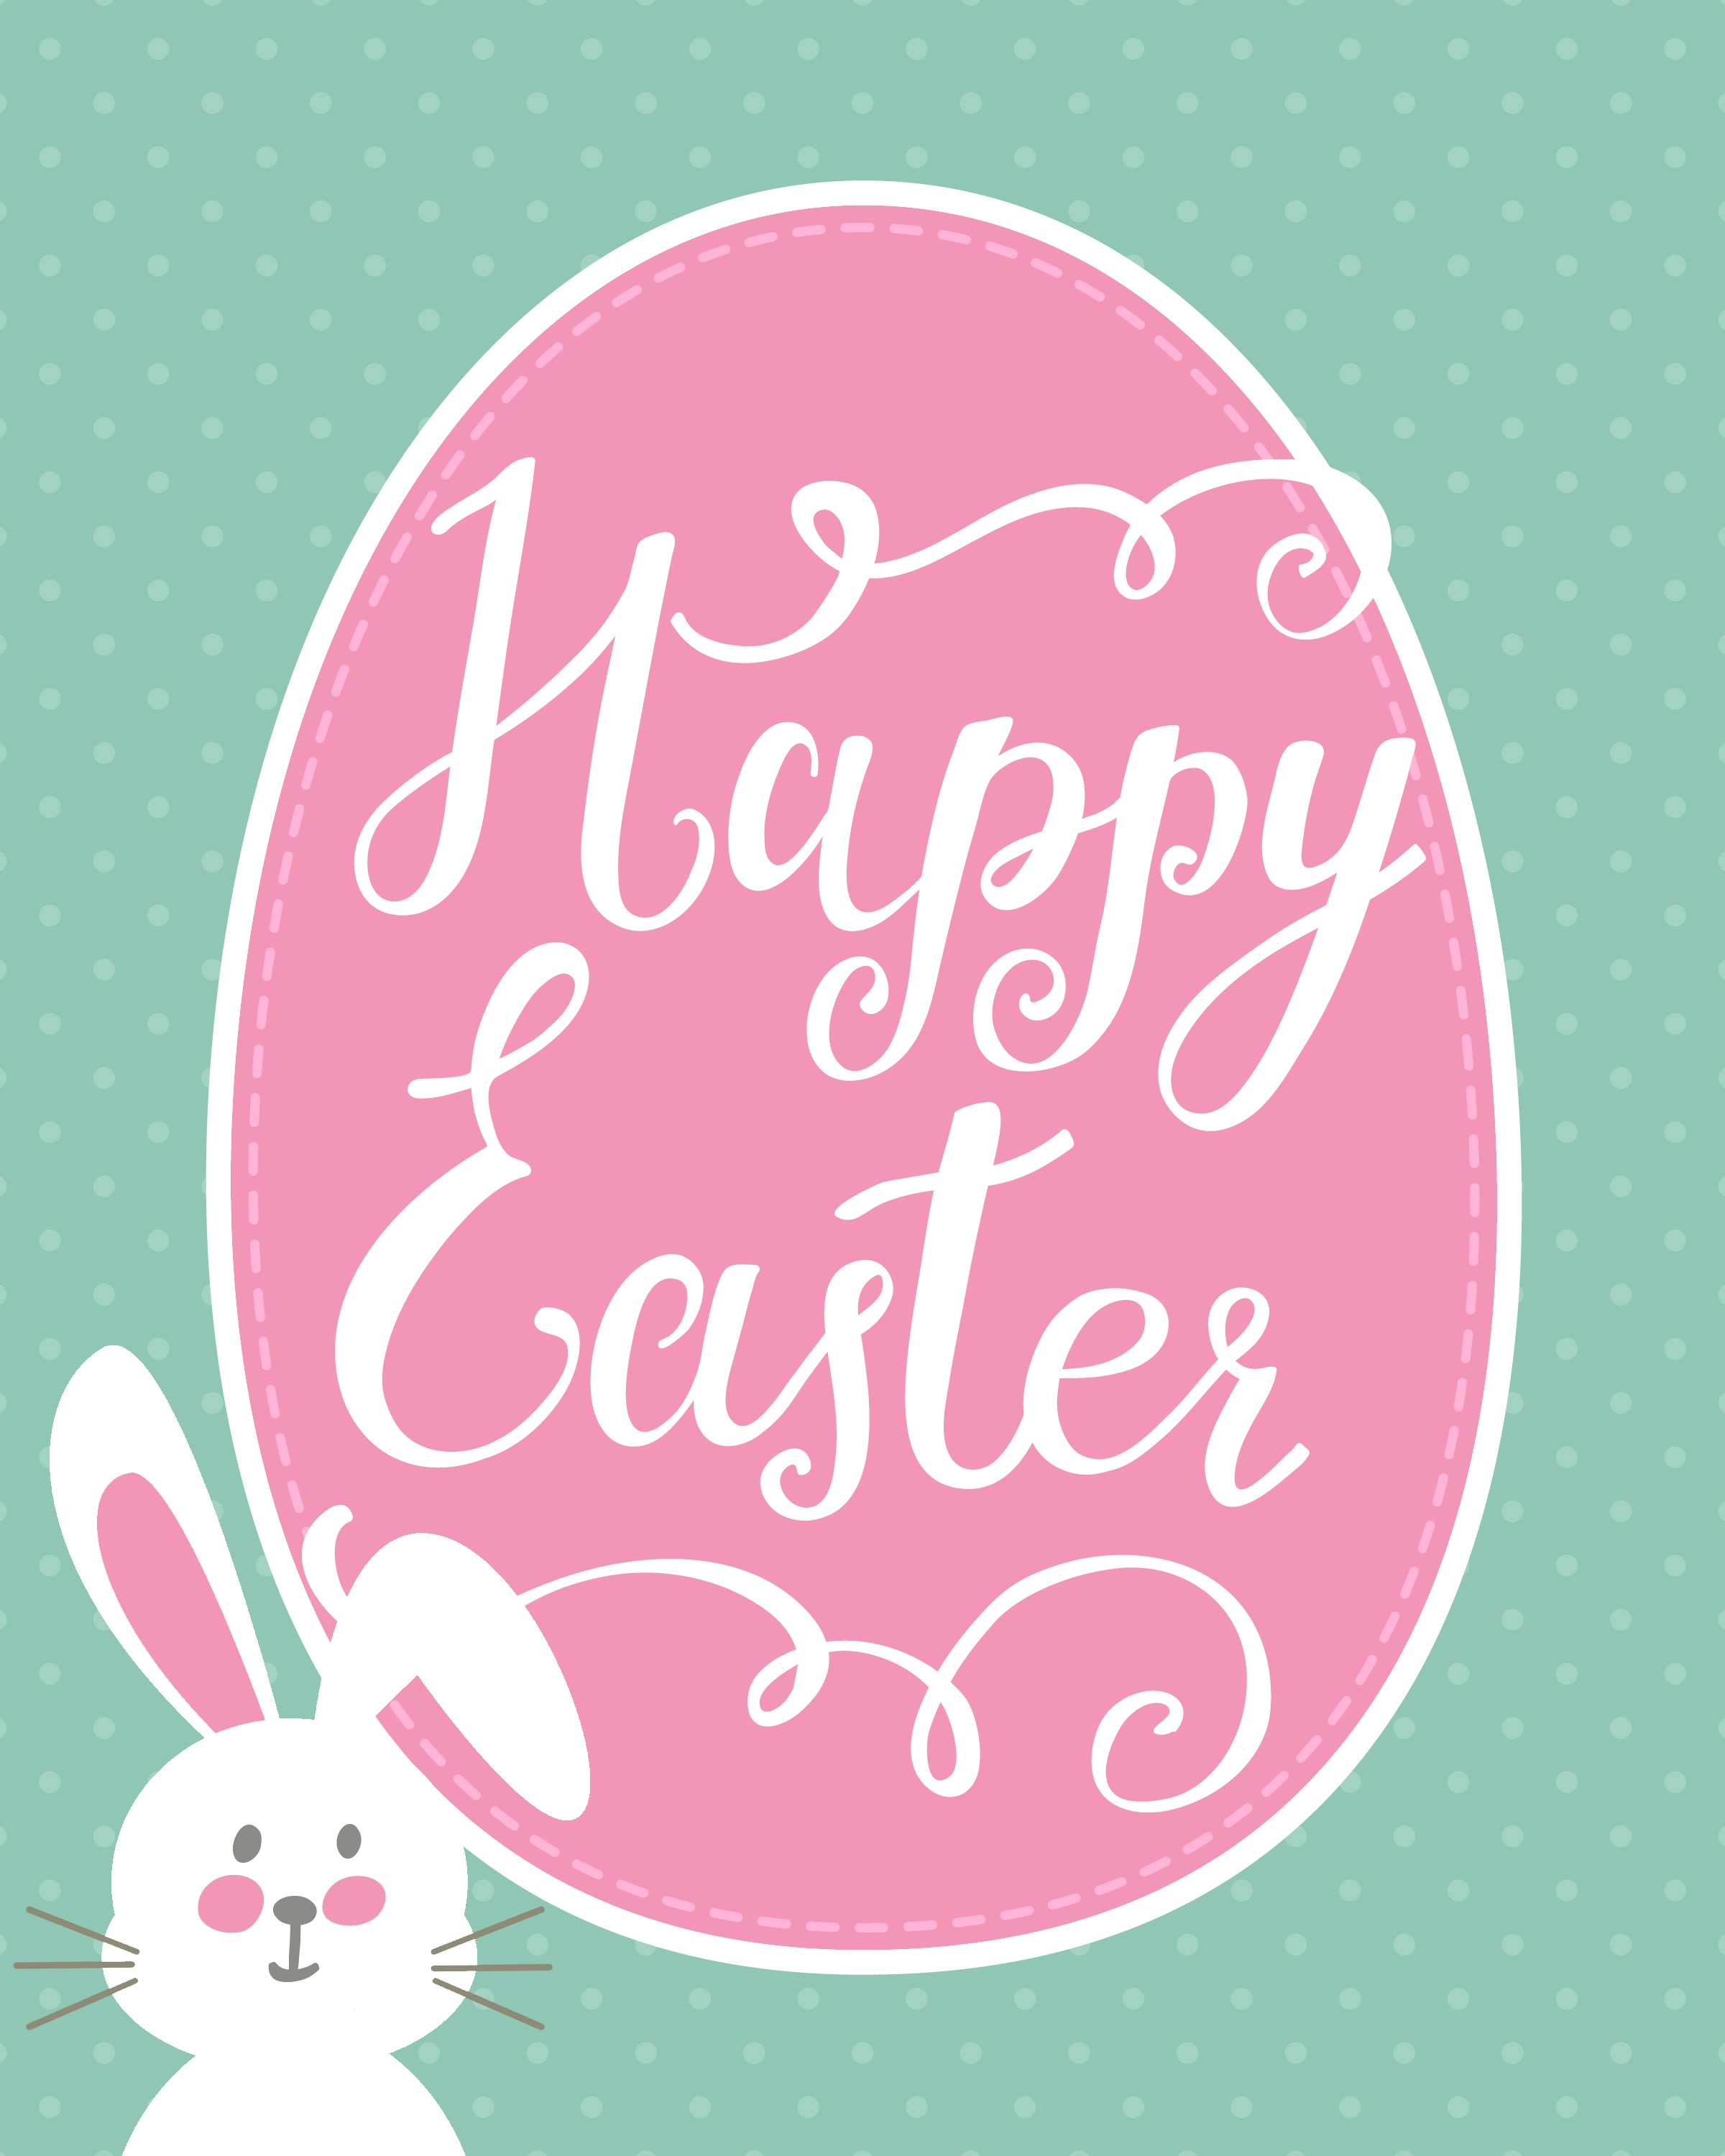 Free Printable Happy Easter Cards – Happy Easter & Thanksgiving 2018 - Free Printable Easter Cards To Print